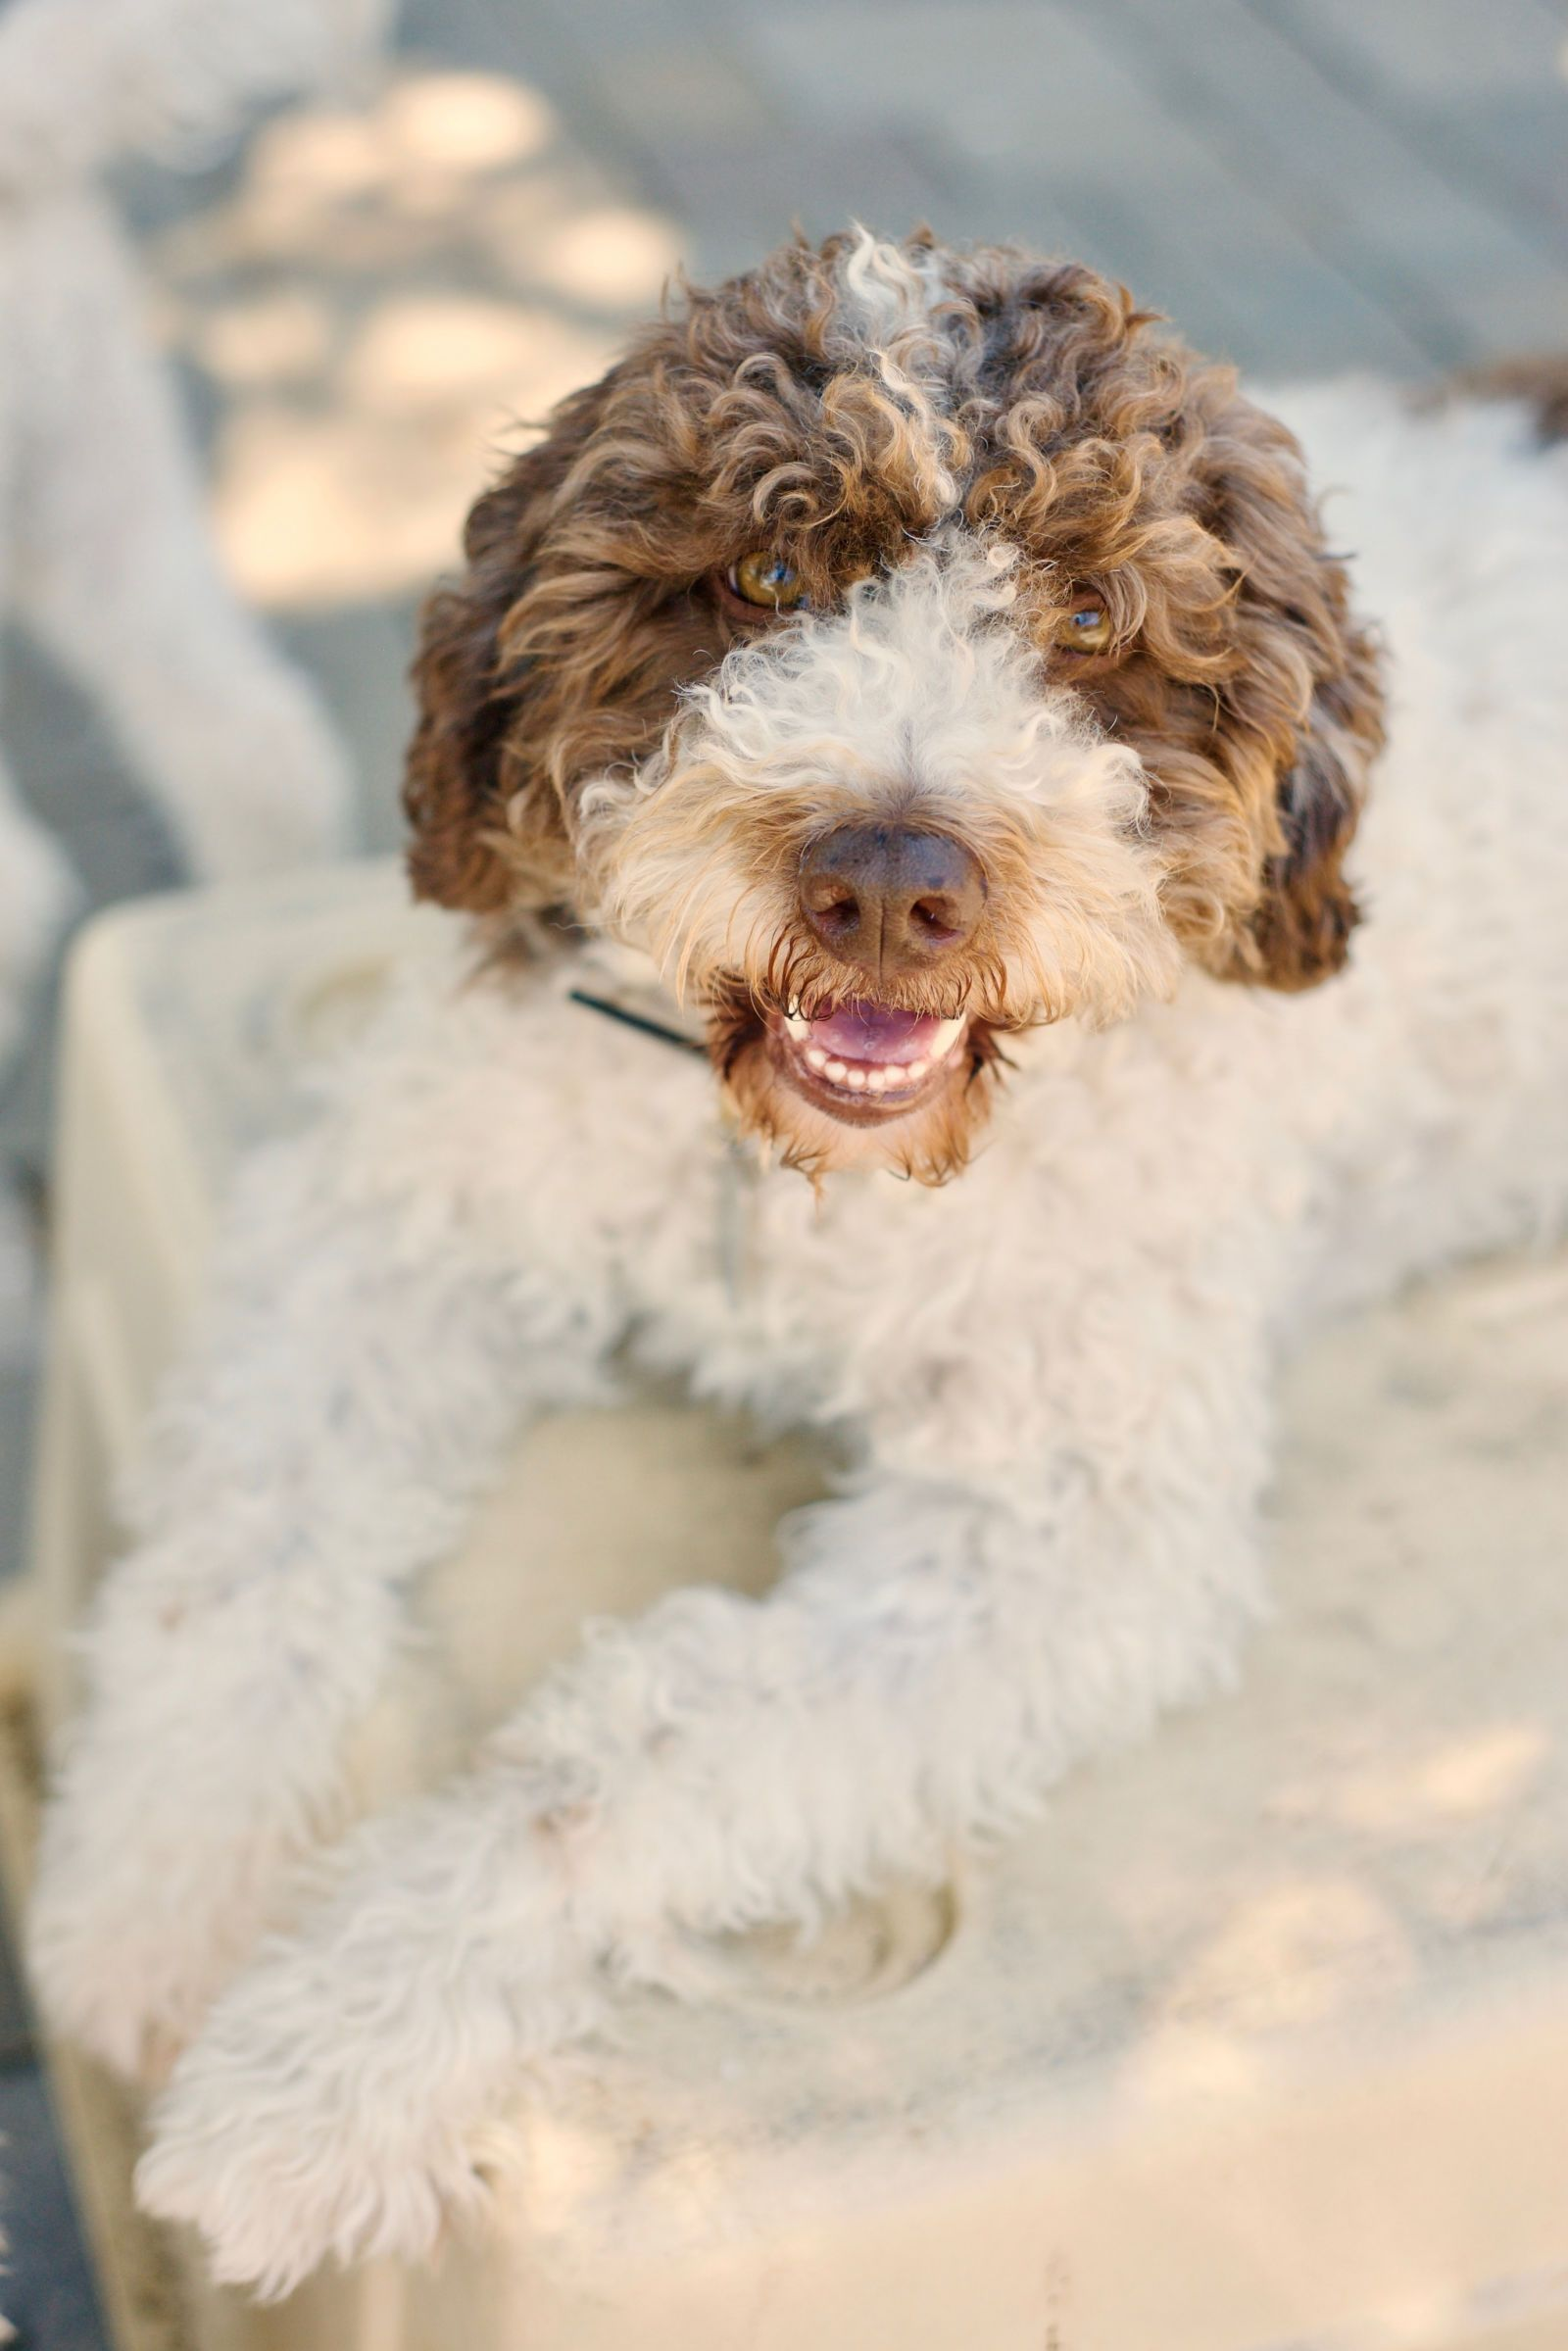 Adopt One Of These Hypoallergenic Dogs For Endless Cuddles Dog Breeds That Dont Shed Dog Breeds Cute Dogs Breeds